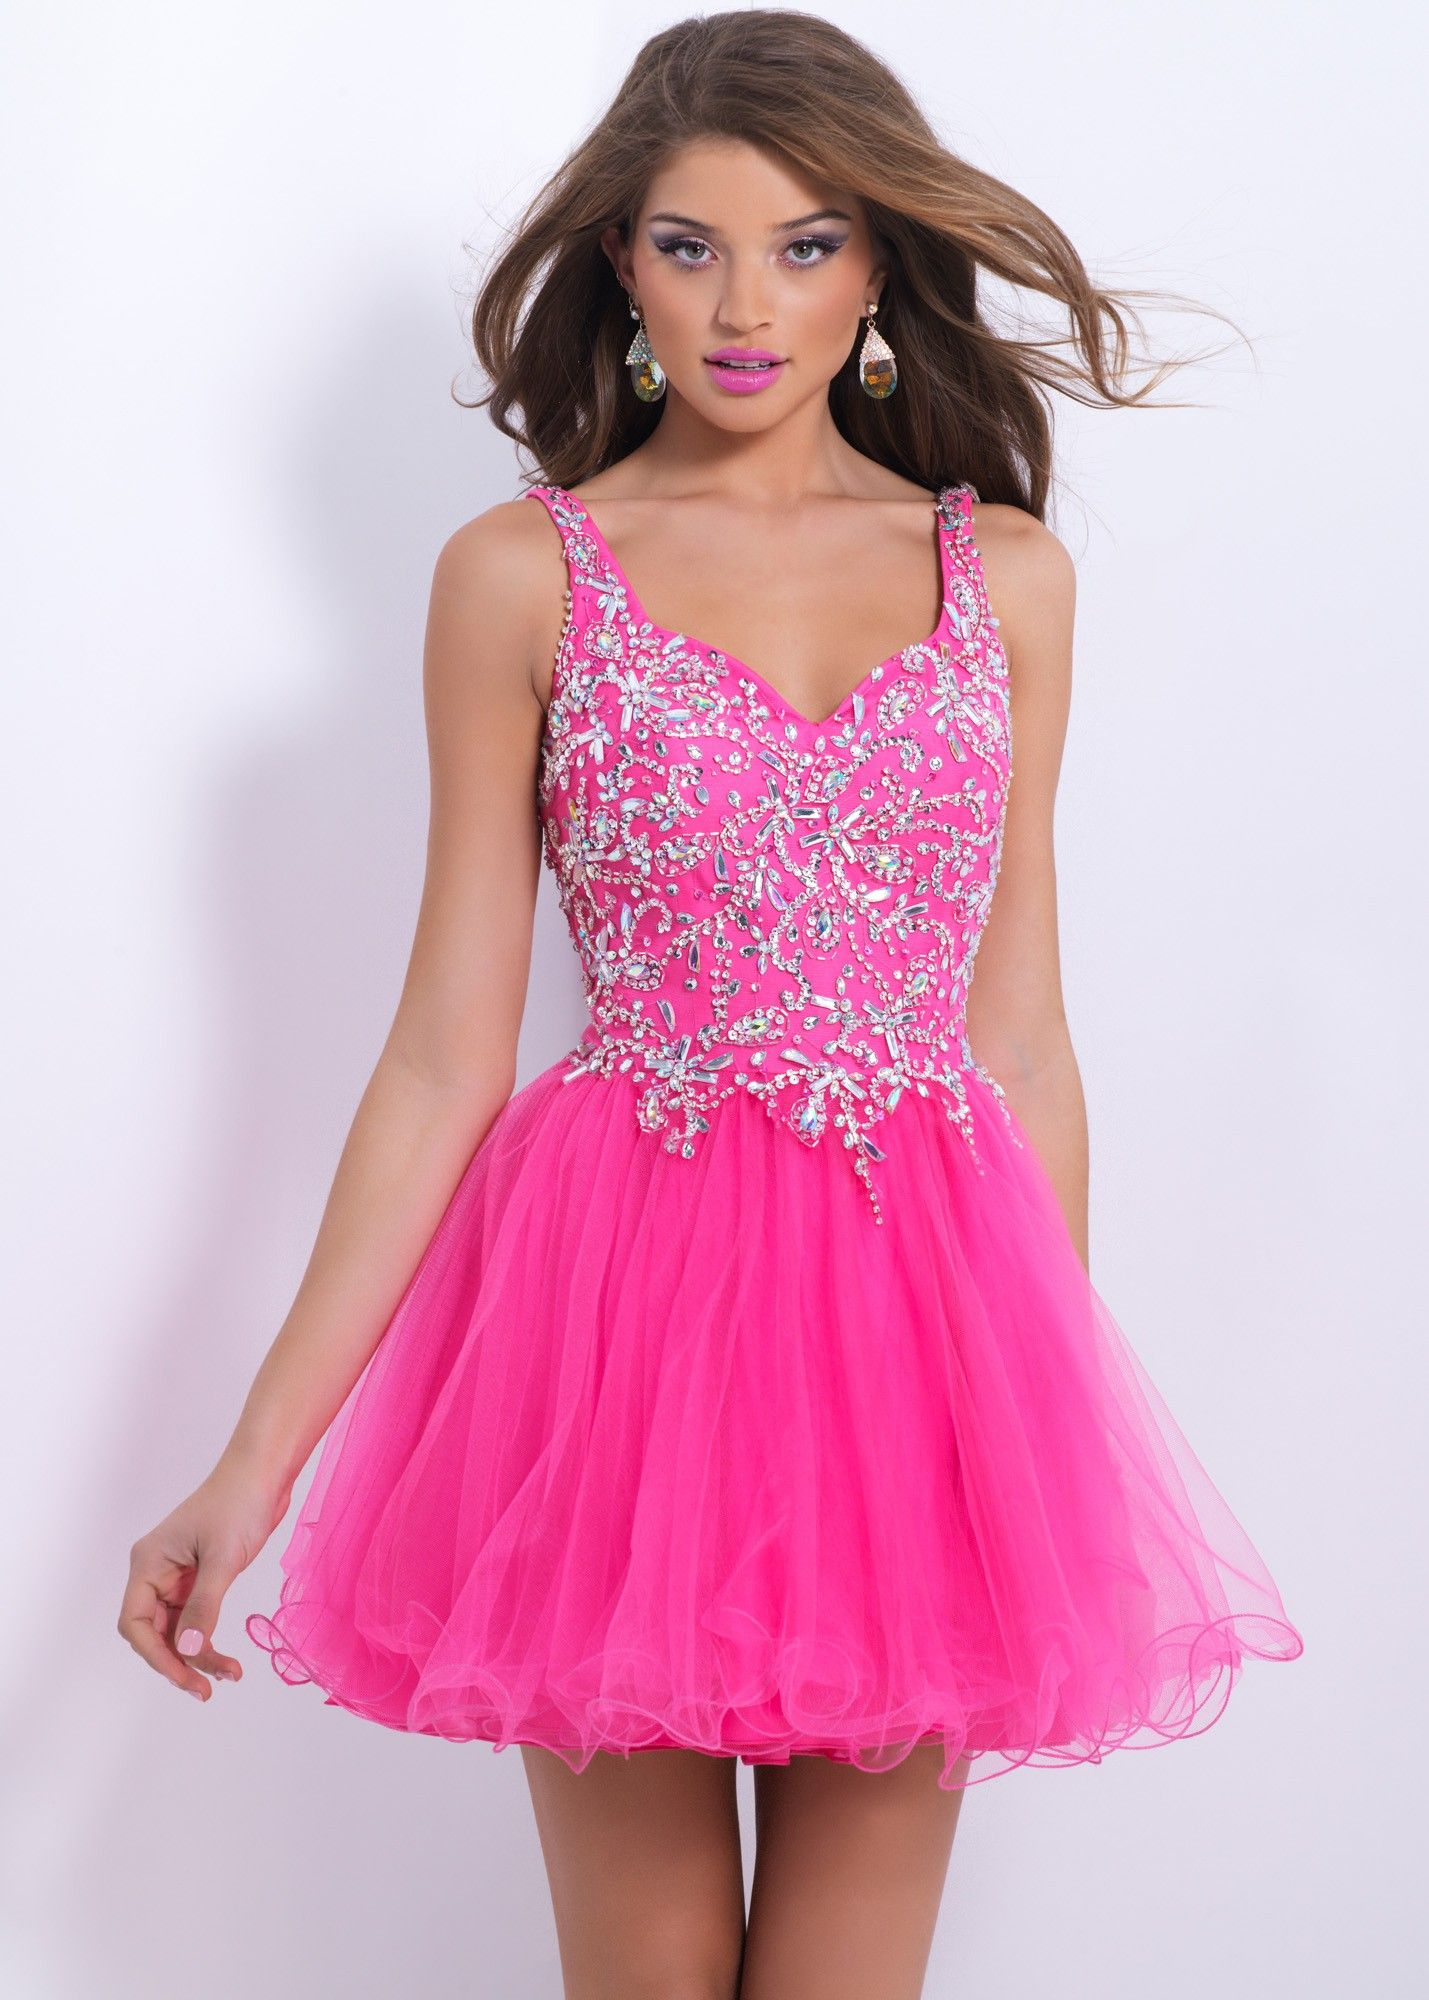 Jewels and crystals define your bodice in this sexy dance dress. The ...